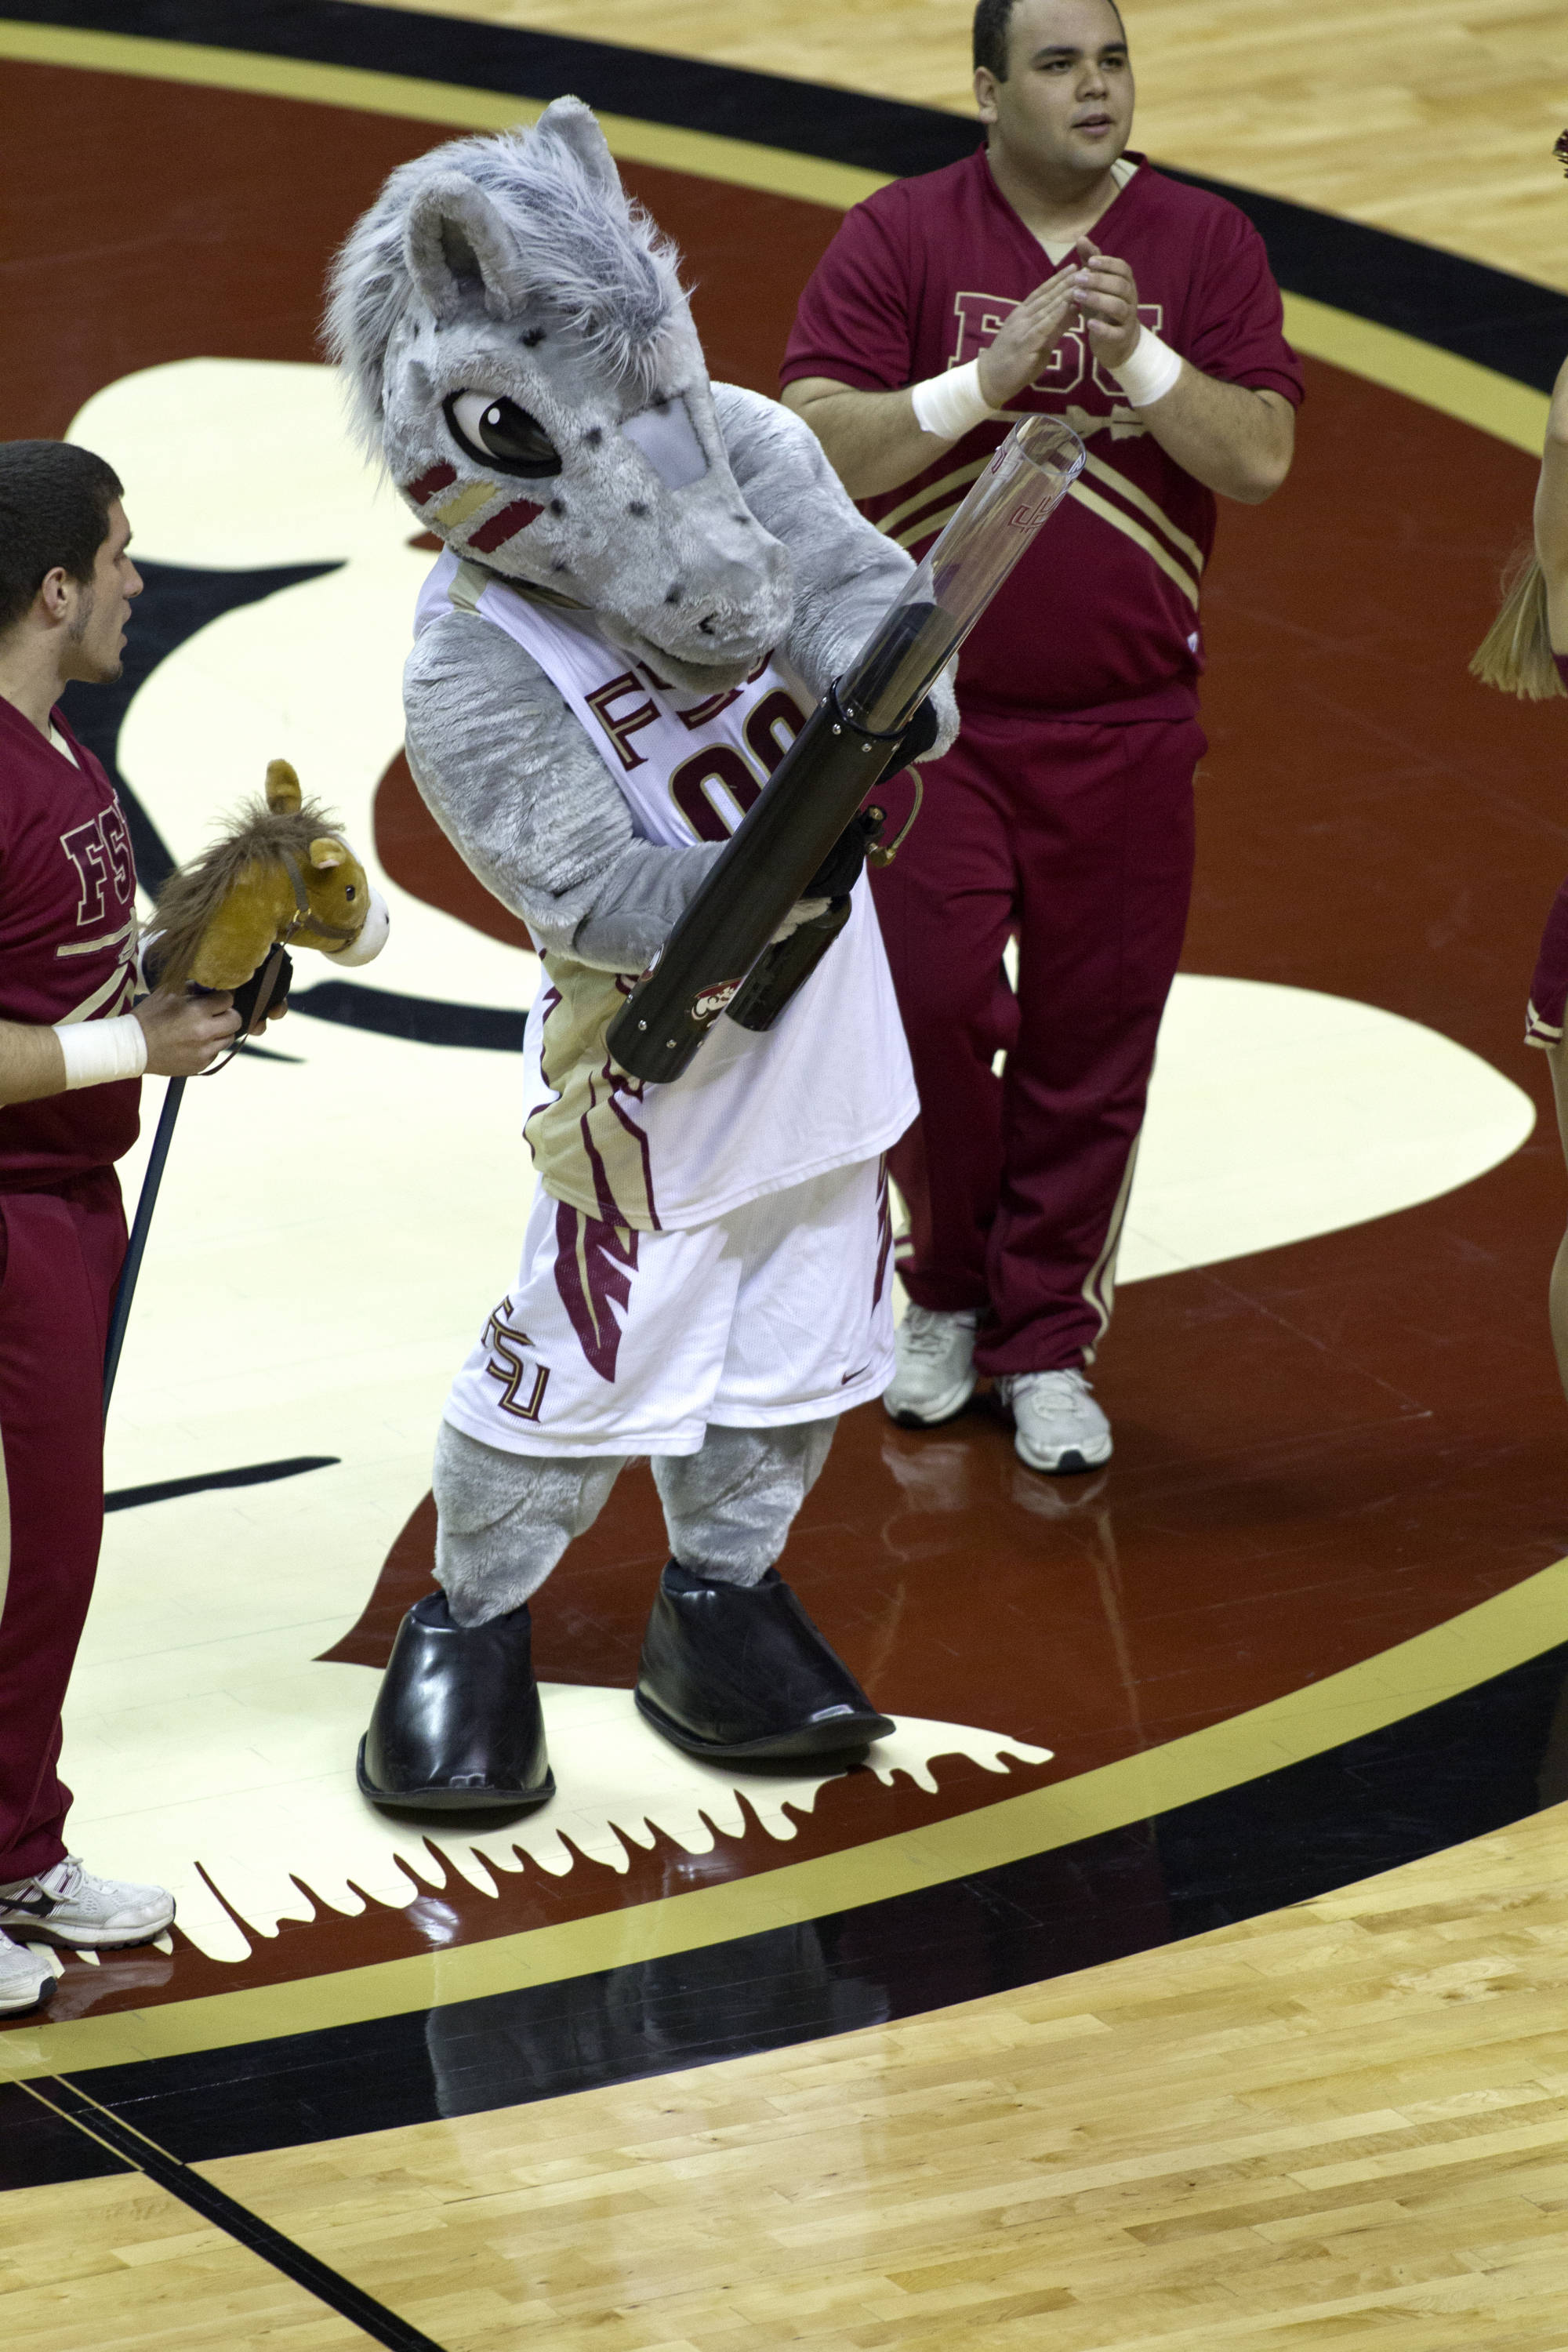 Cimarron and t-shirt time, FSU vs Wake Forest, 02/26/13. (Photo by Steve Musco)